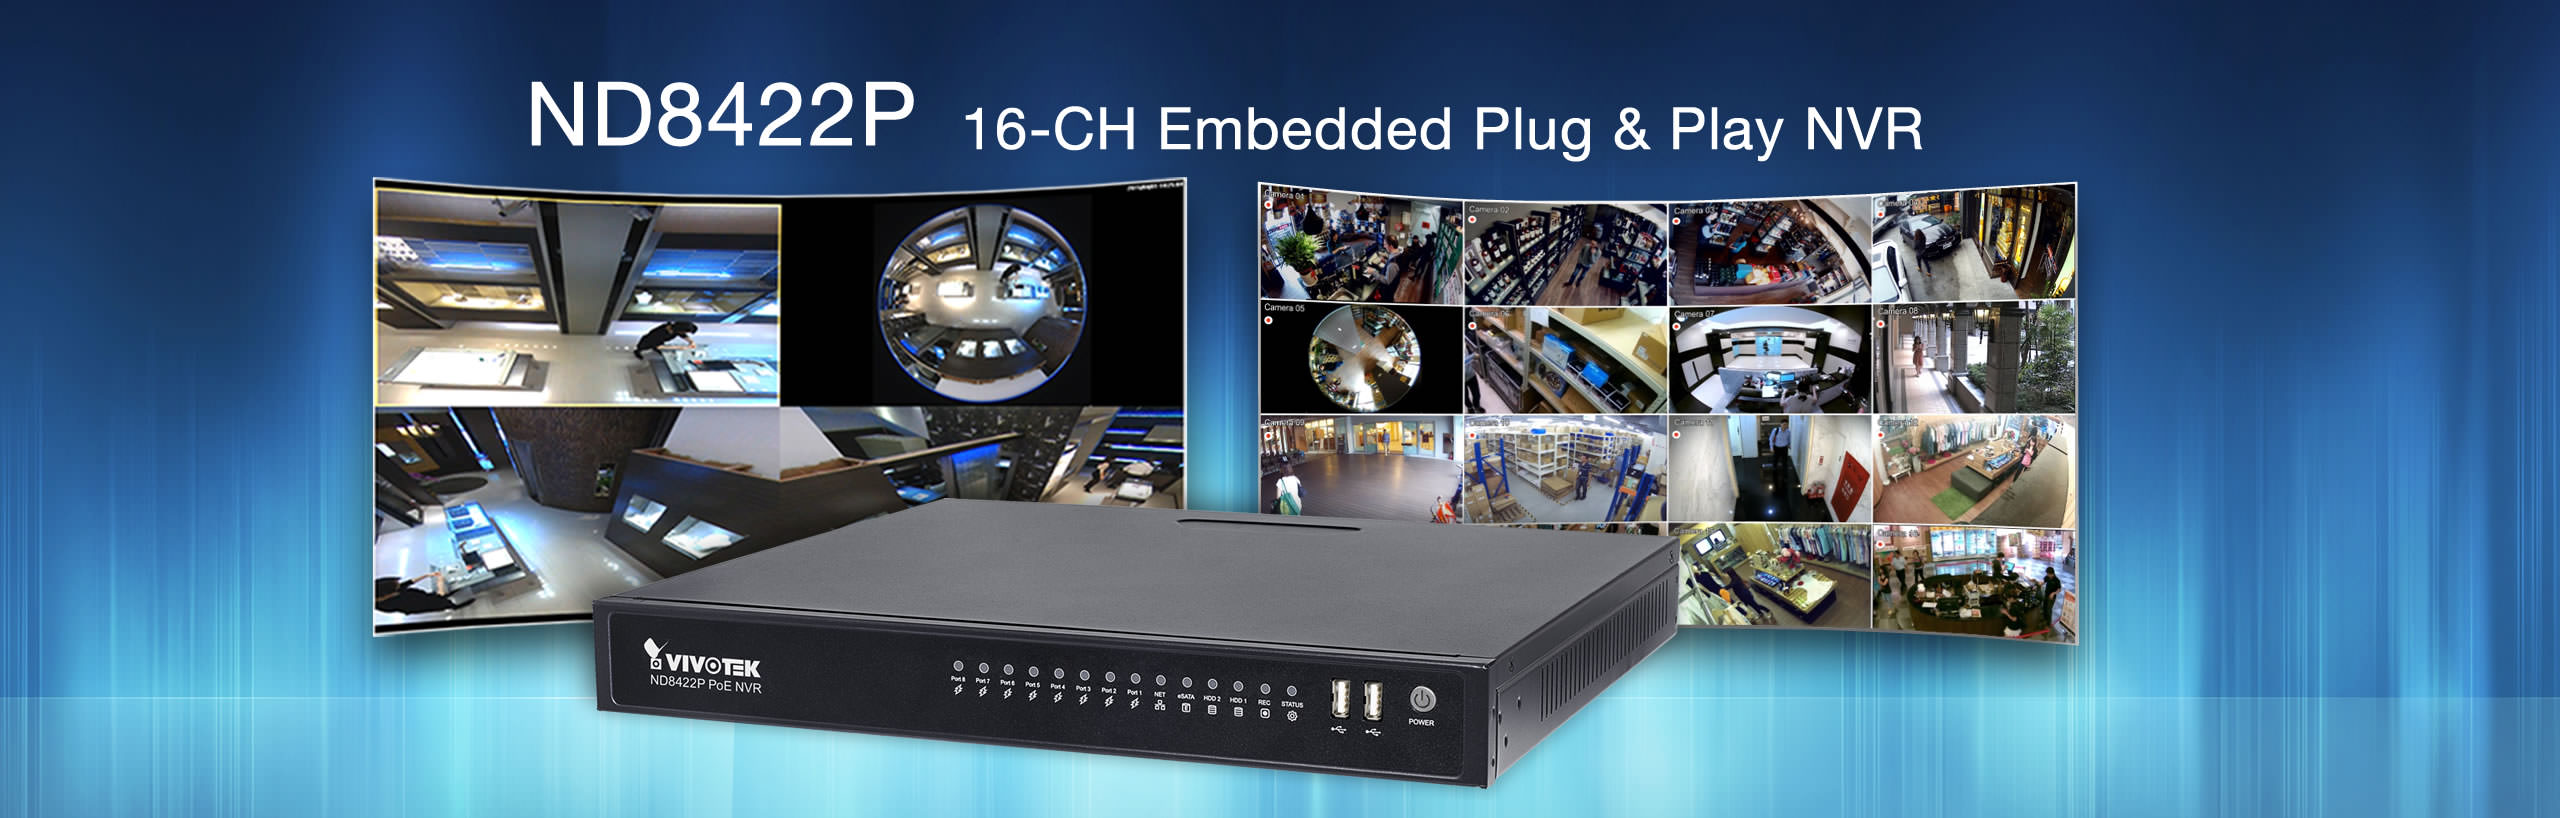 VIVOTEK Introduces New Smart and Efficient ND8422P PoE NVR for Multiple Surveillance Applications